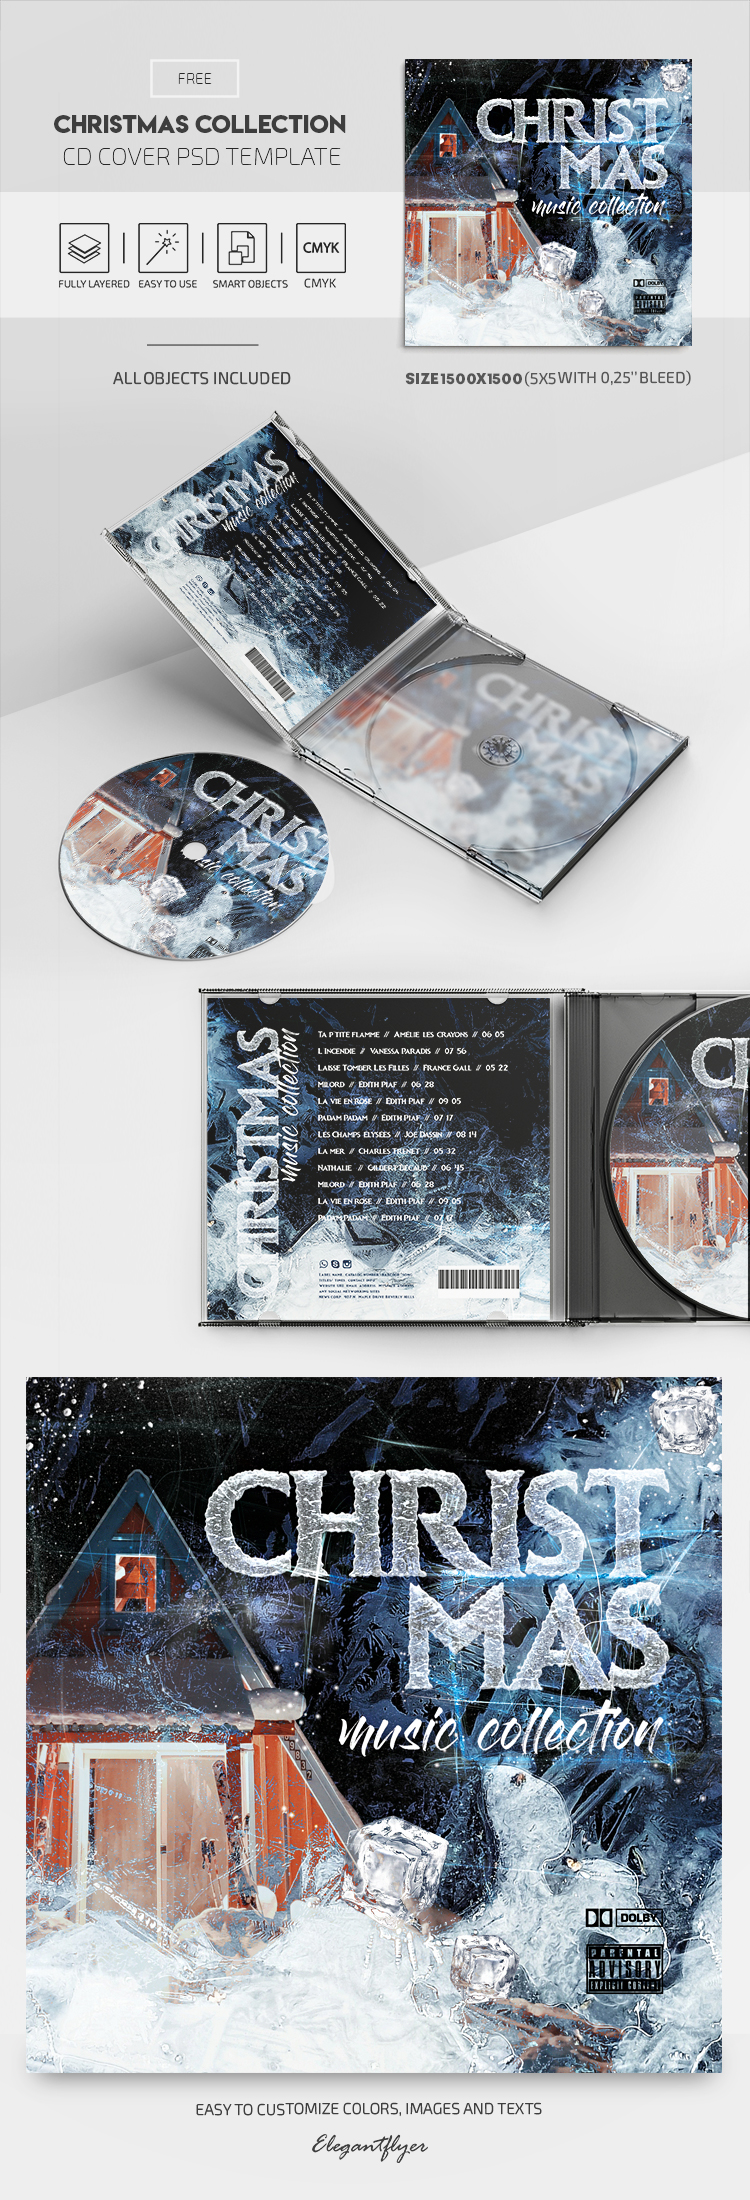 Christmas Collection – Free CD Cover PSD Template